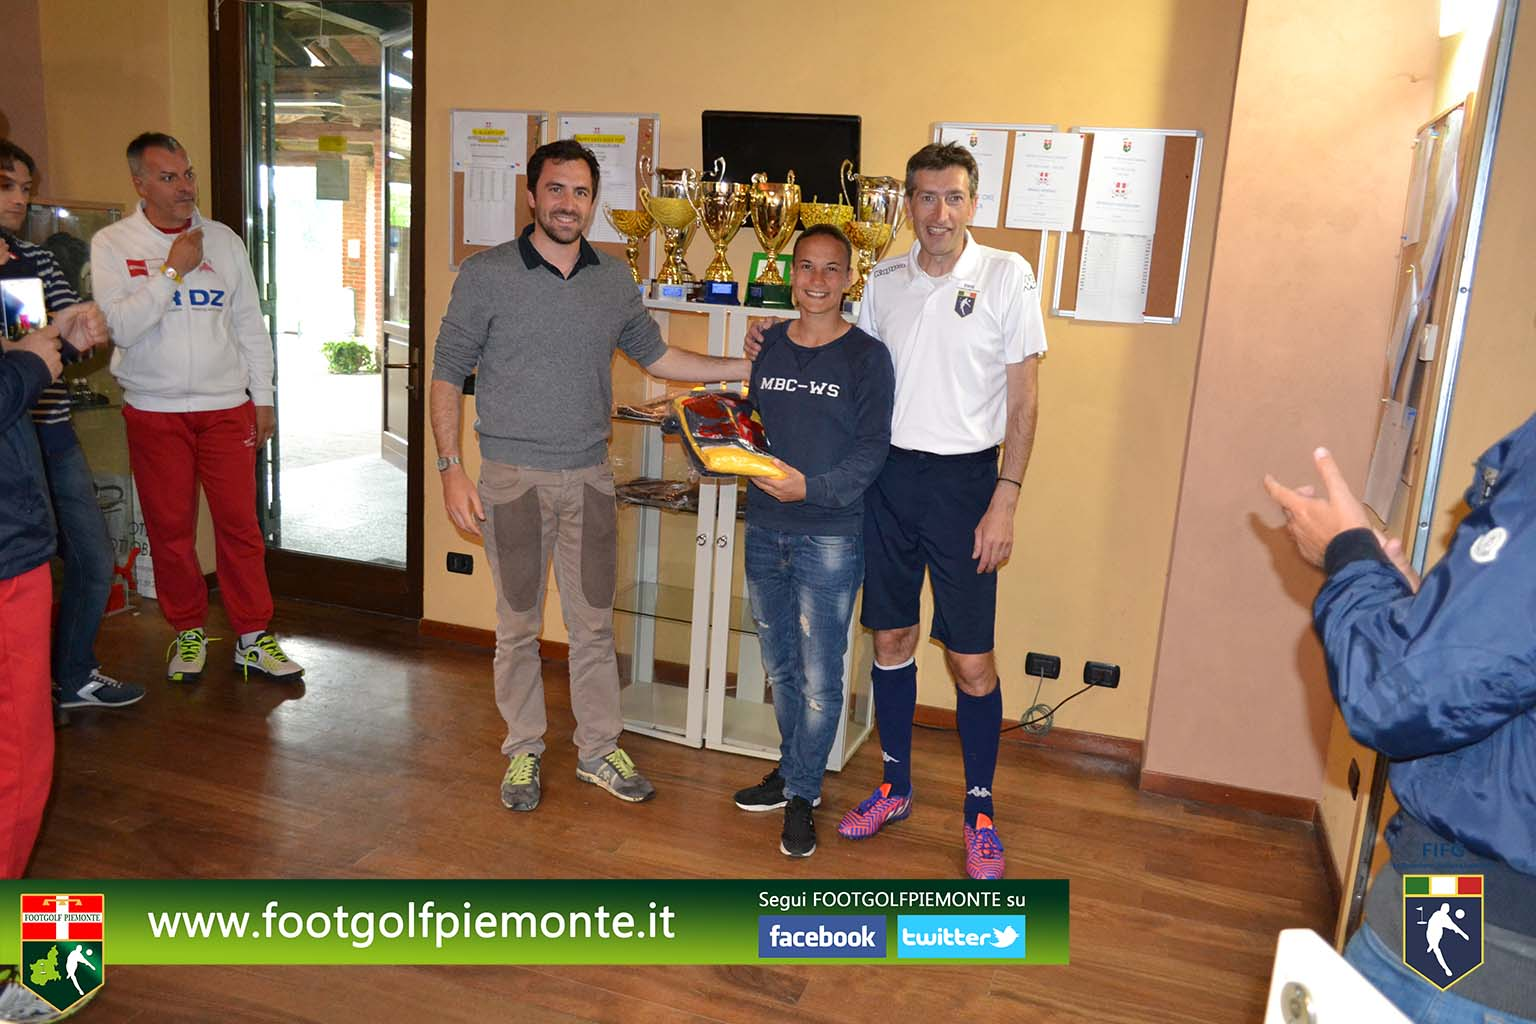 FOTO 9 Regions' Cup Footgolf Piemonte 2016 Golf Città di Asti (At) 30apr16-108